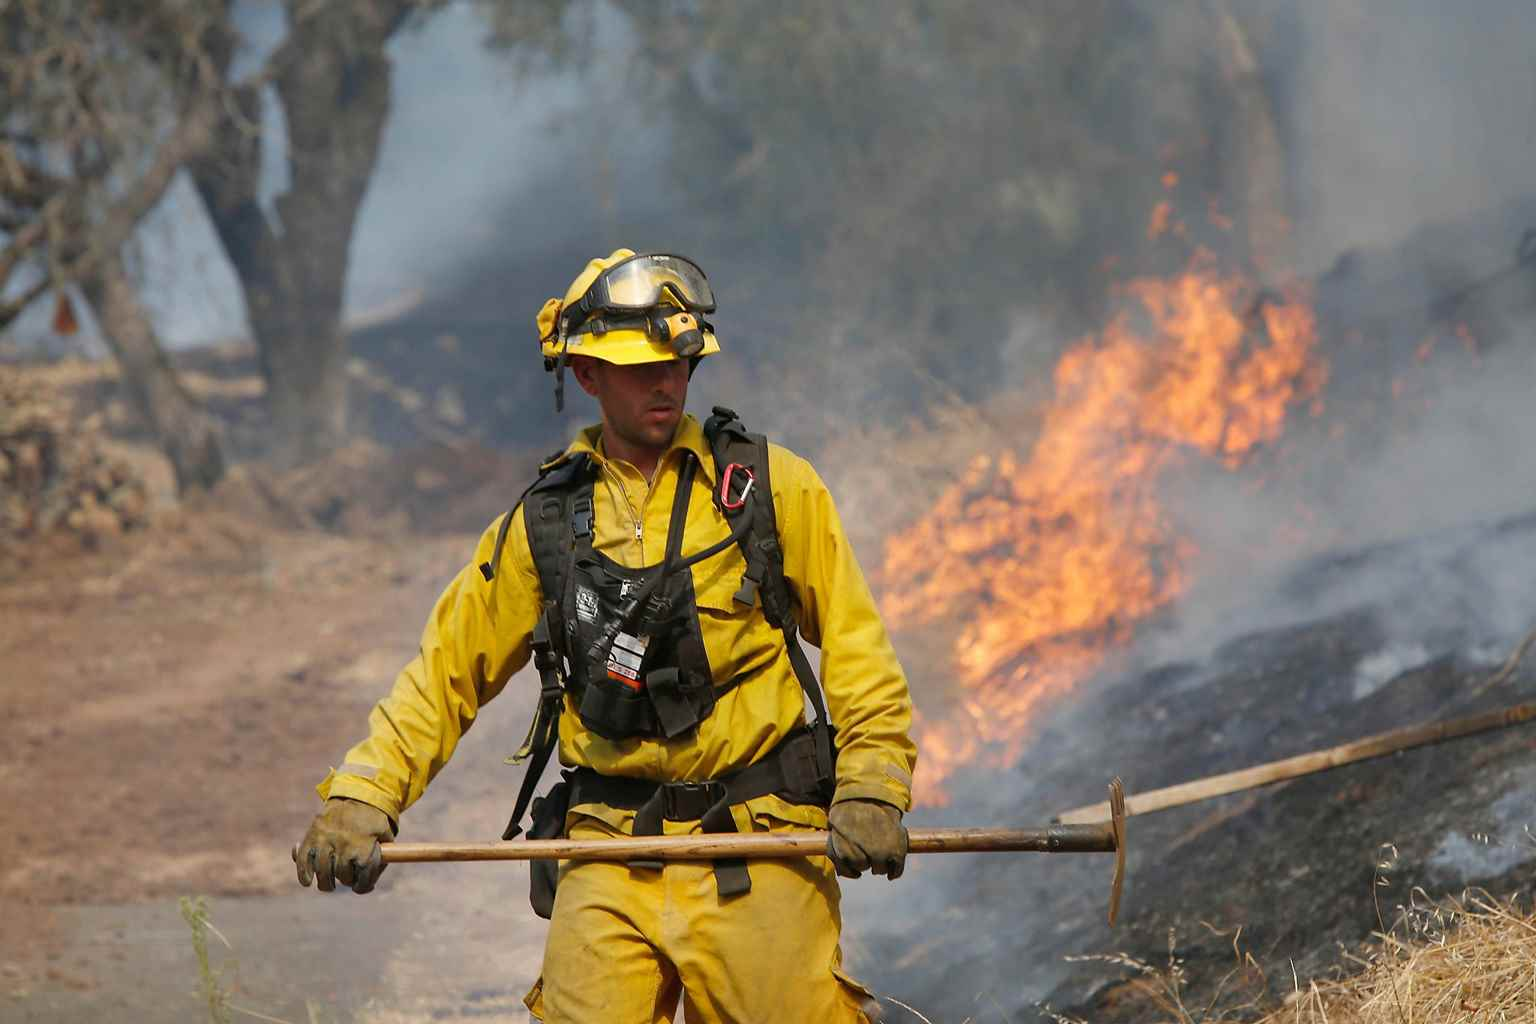 The Best Ear Protection For Firefighters, According To A Pro